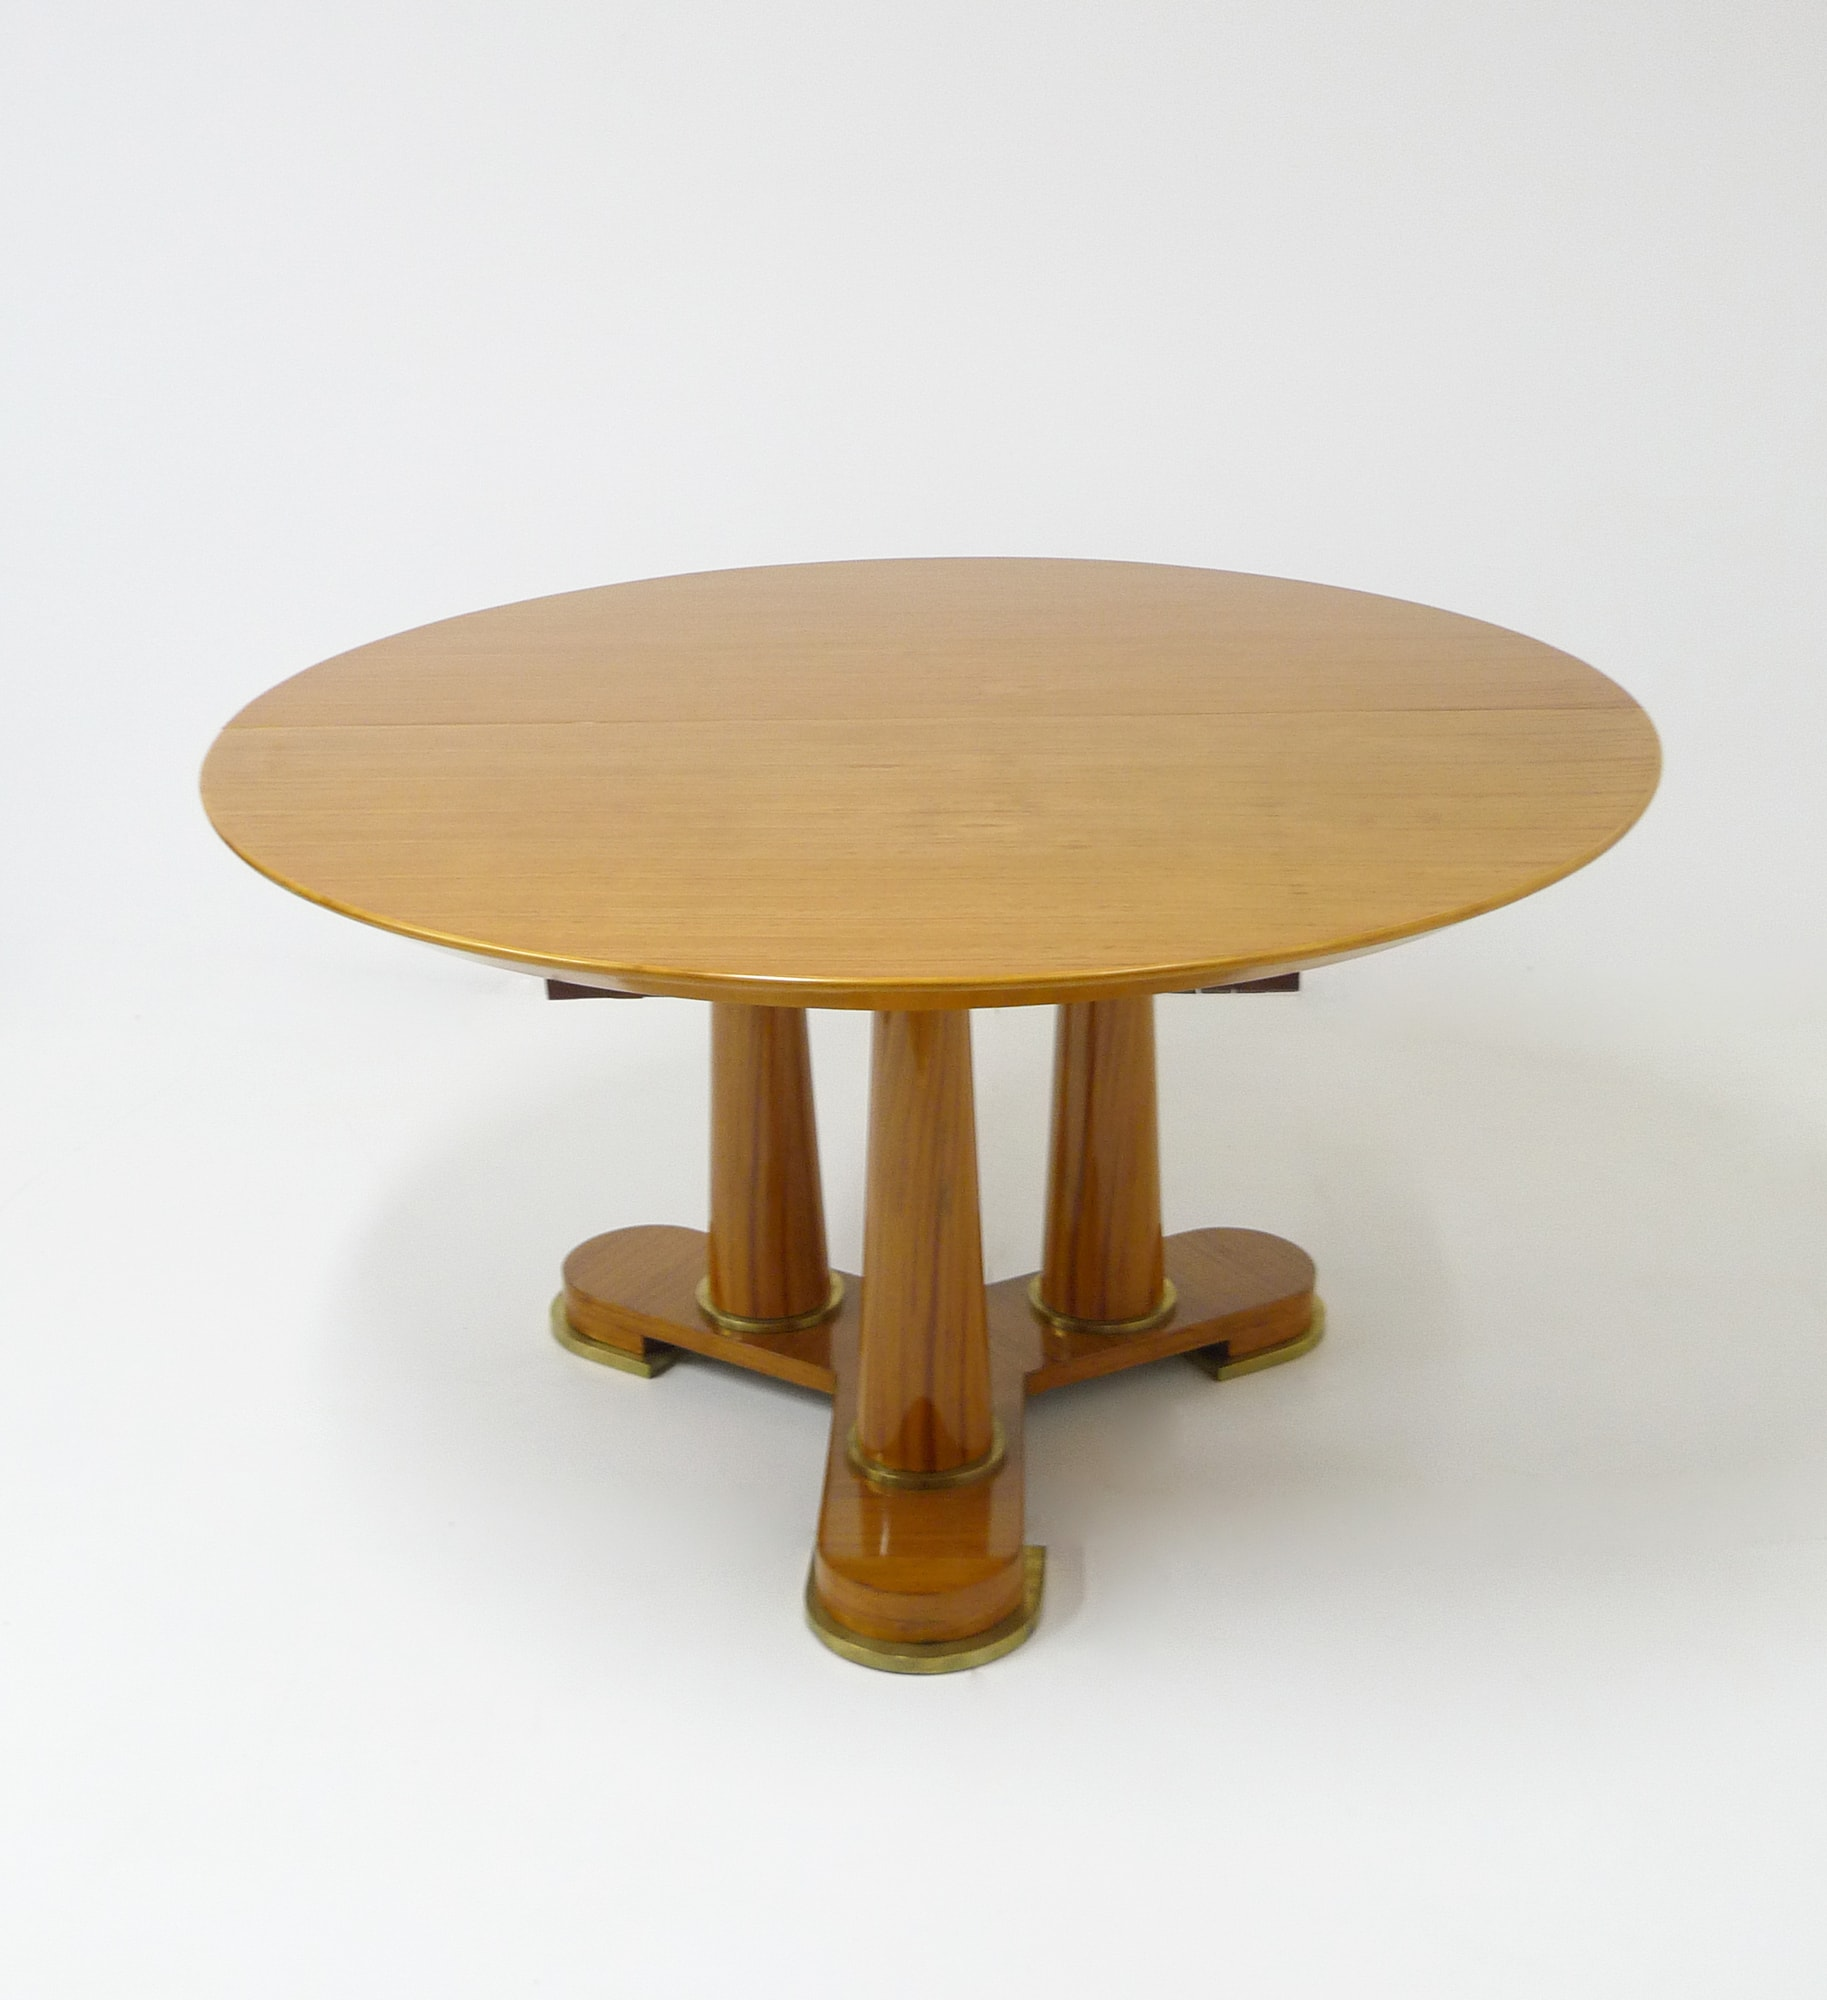 Jean Royère, Lemon-tree table, vue 01